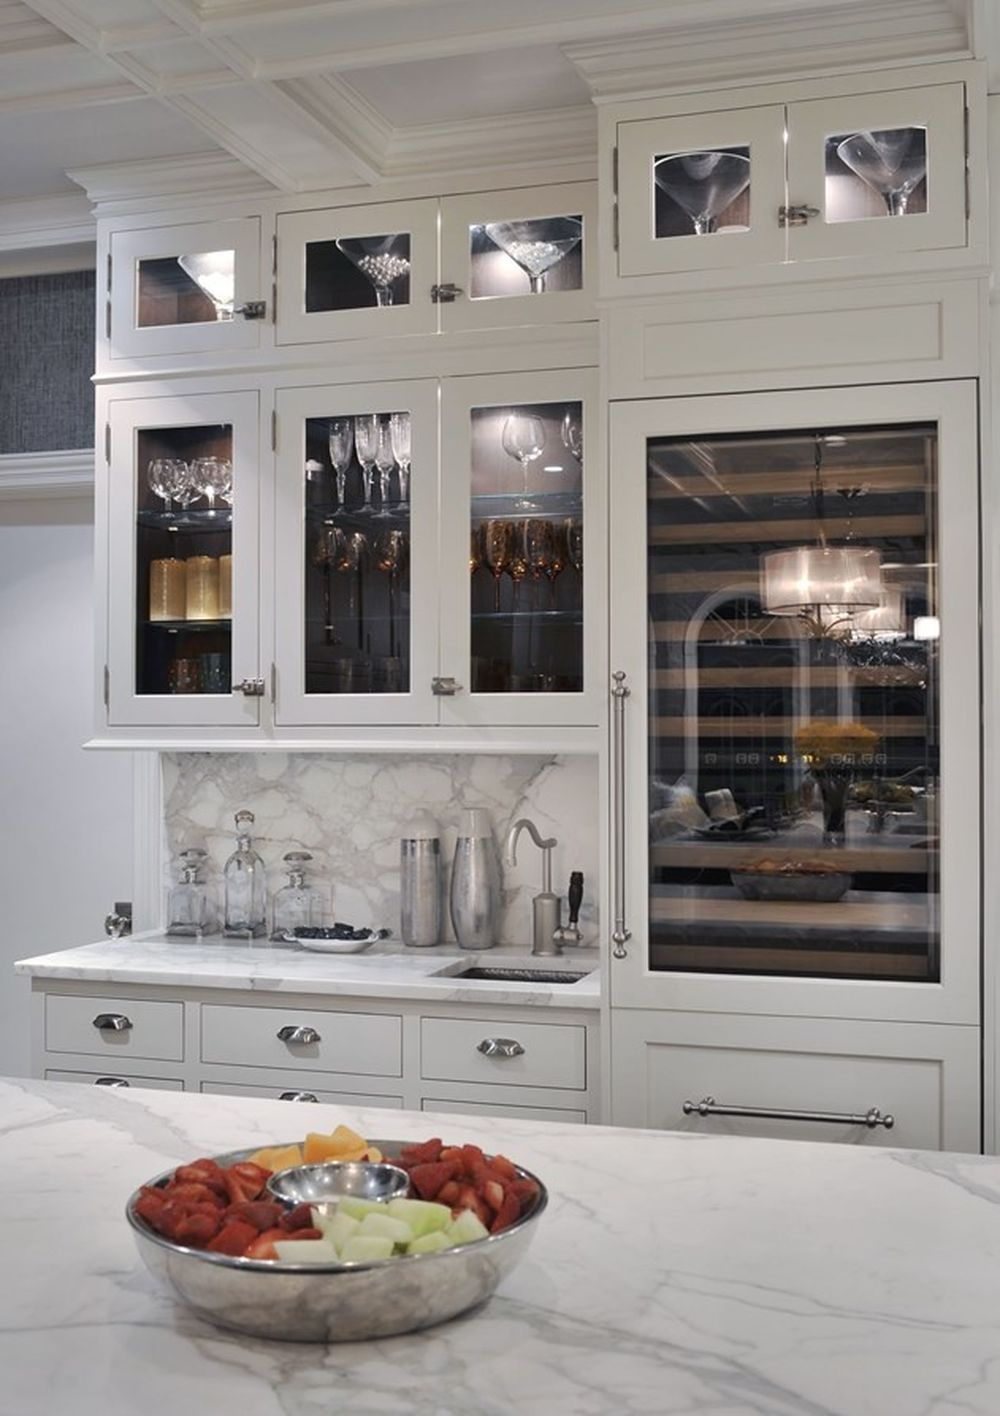 40 Gorgeous Ideas For Remodeling Small Kitchen